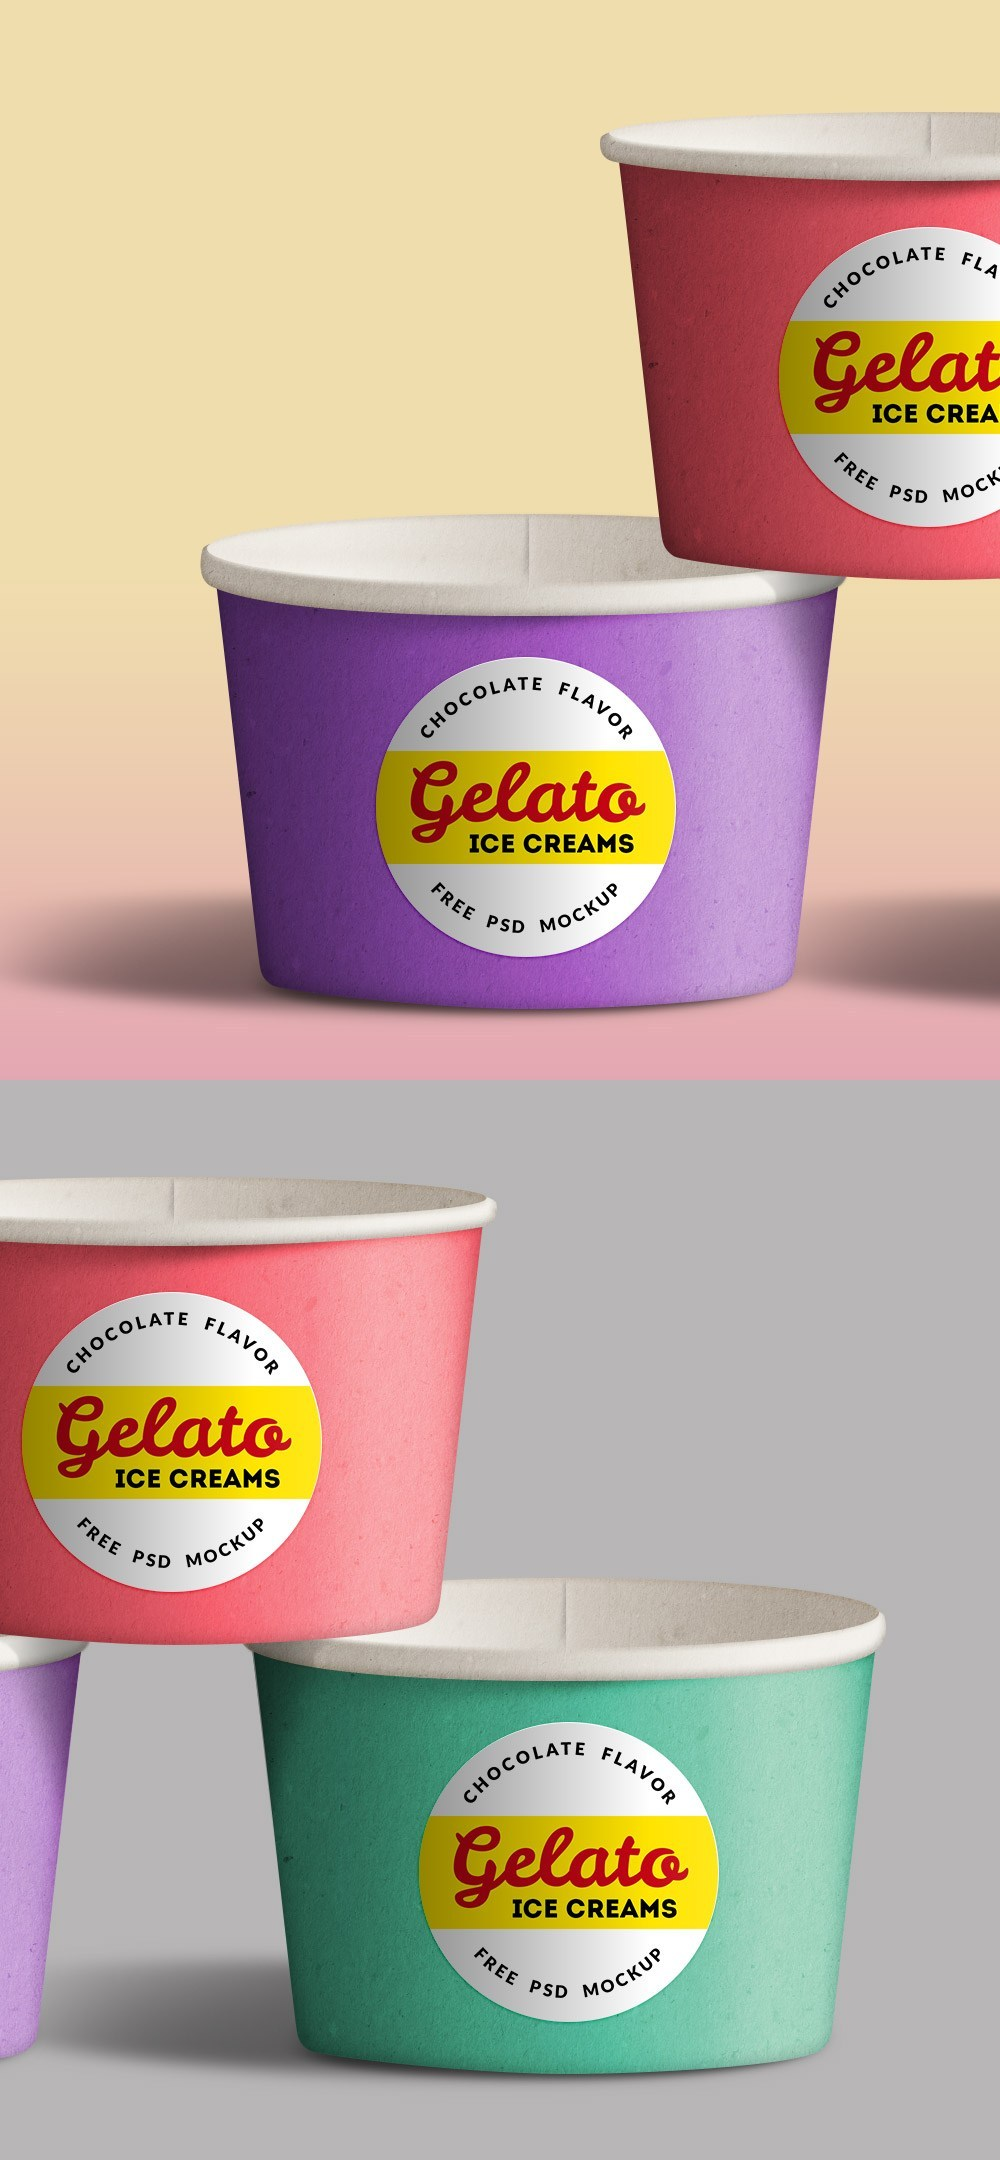 Ice Cream Cups Mockup PSD